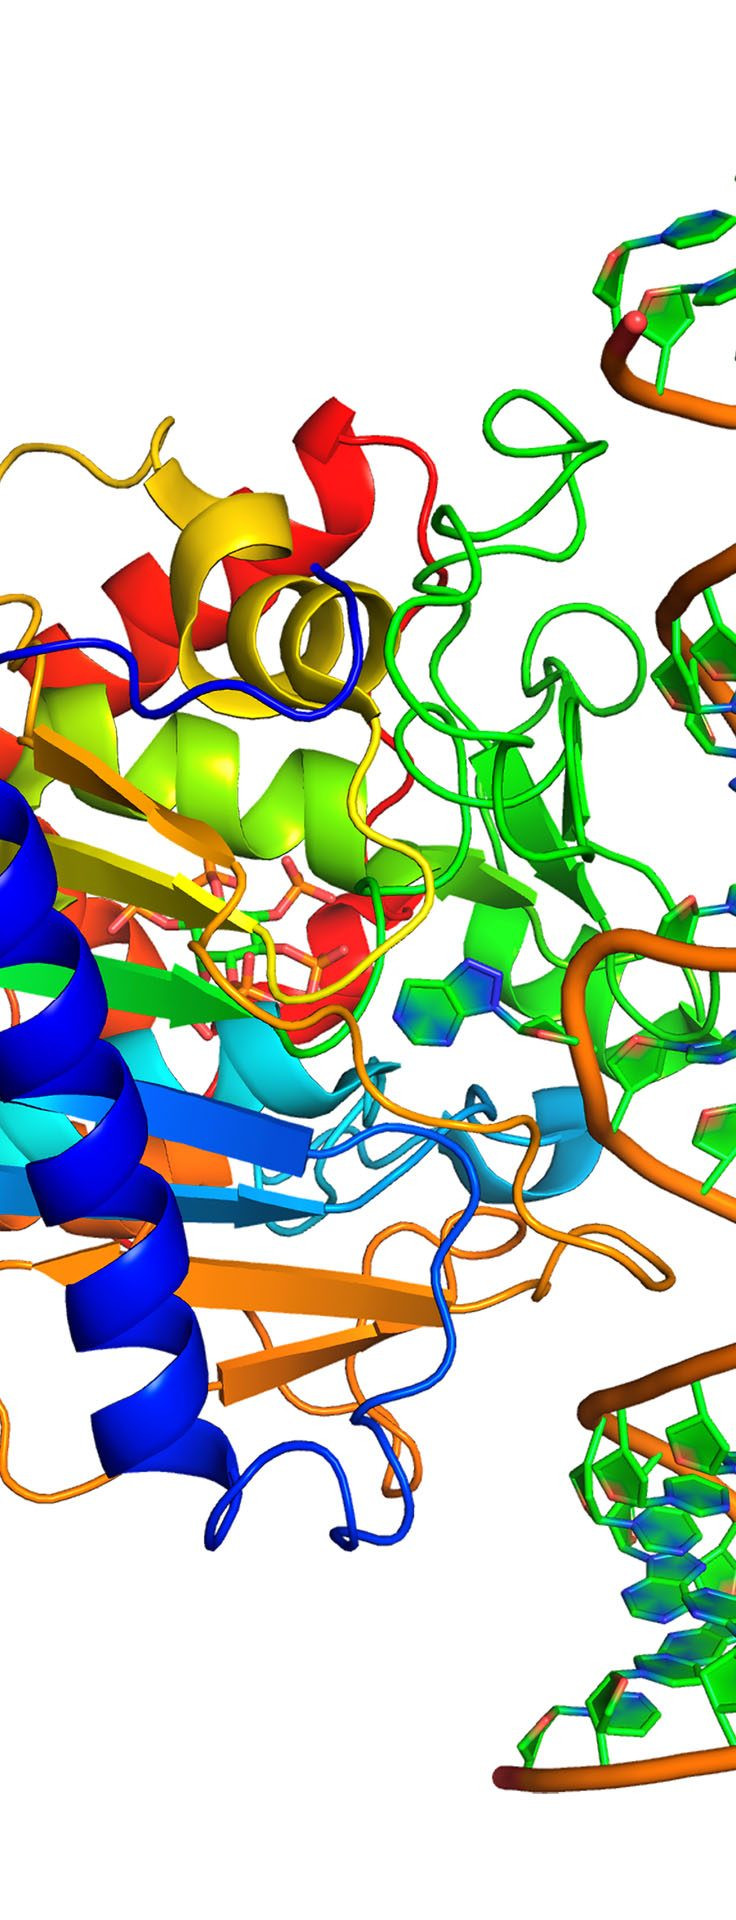 The crystal structure of human ADAR, where dysregulation by Zika may lead to neurological damage